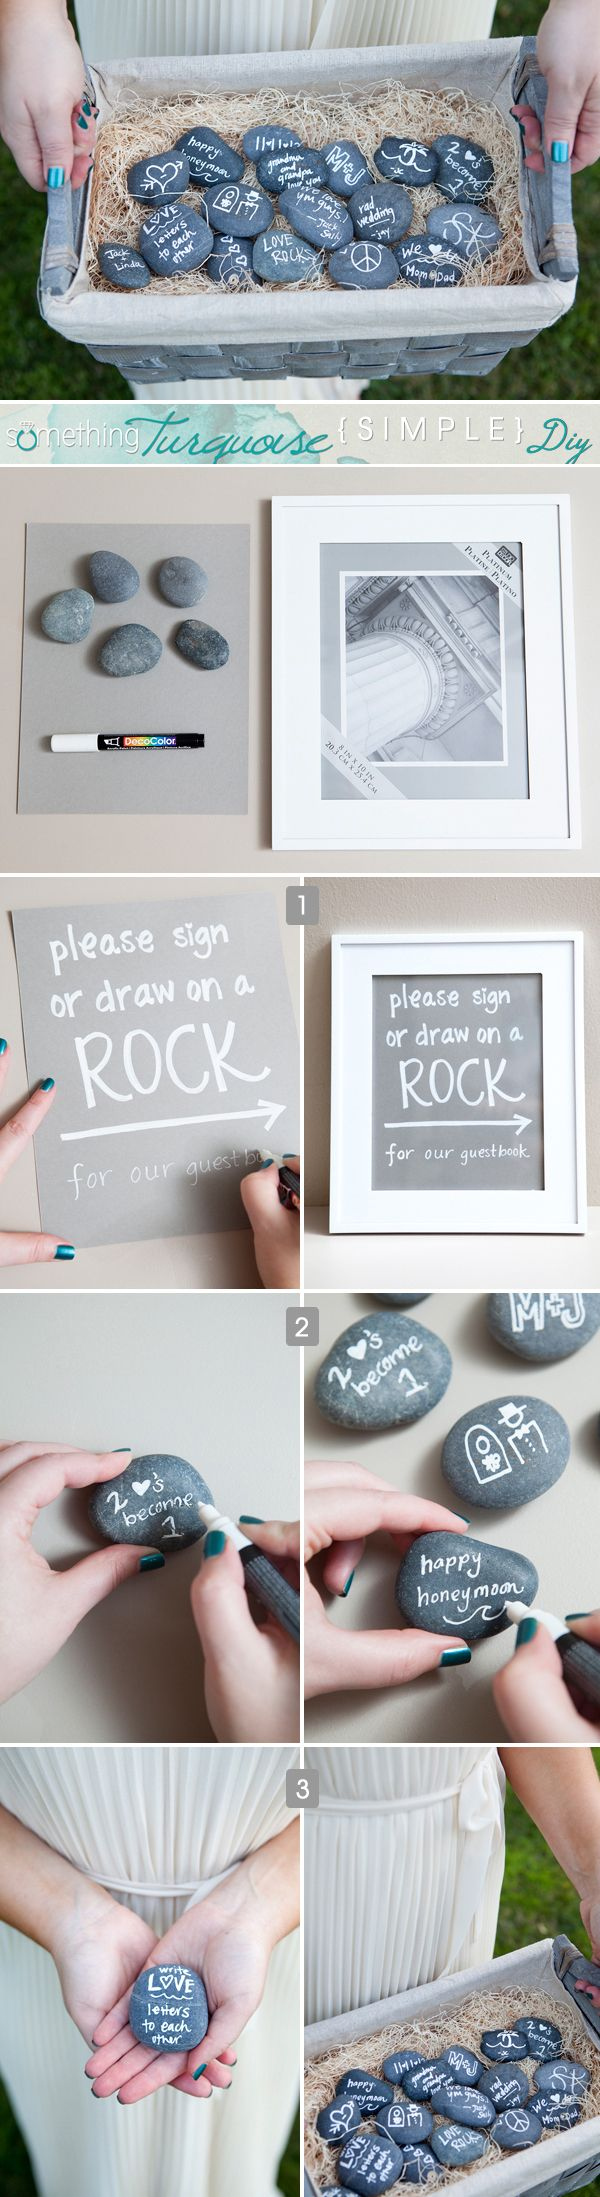 Simple DIY | rock guest book